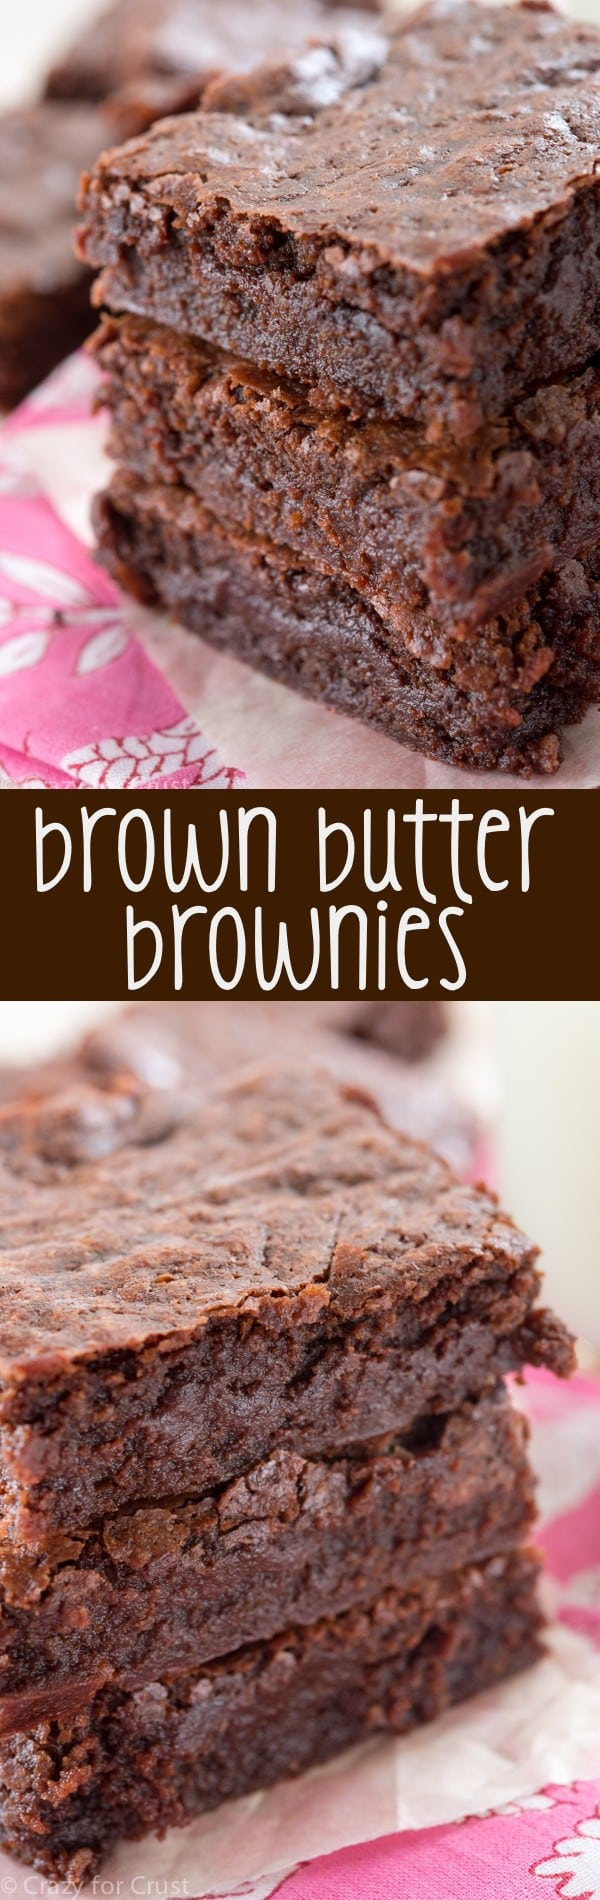 How to make Brown Butter Brownies - this easy brownie recipe is the BEST one ever! 3 kinds of chocolate and brown butter flavor - you'll never use a box mix again!